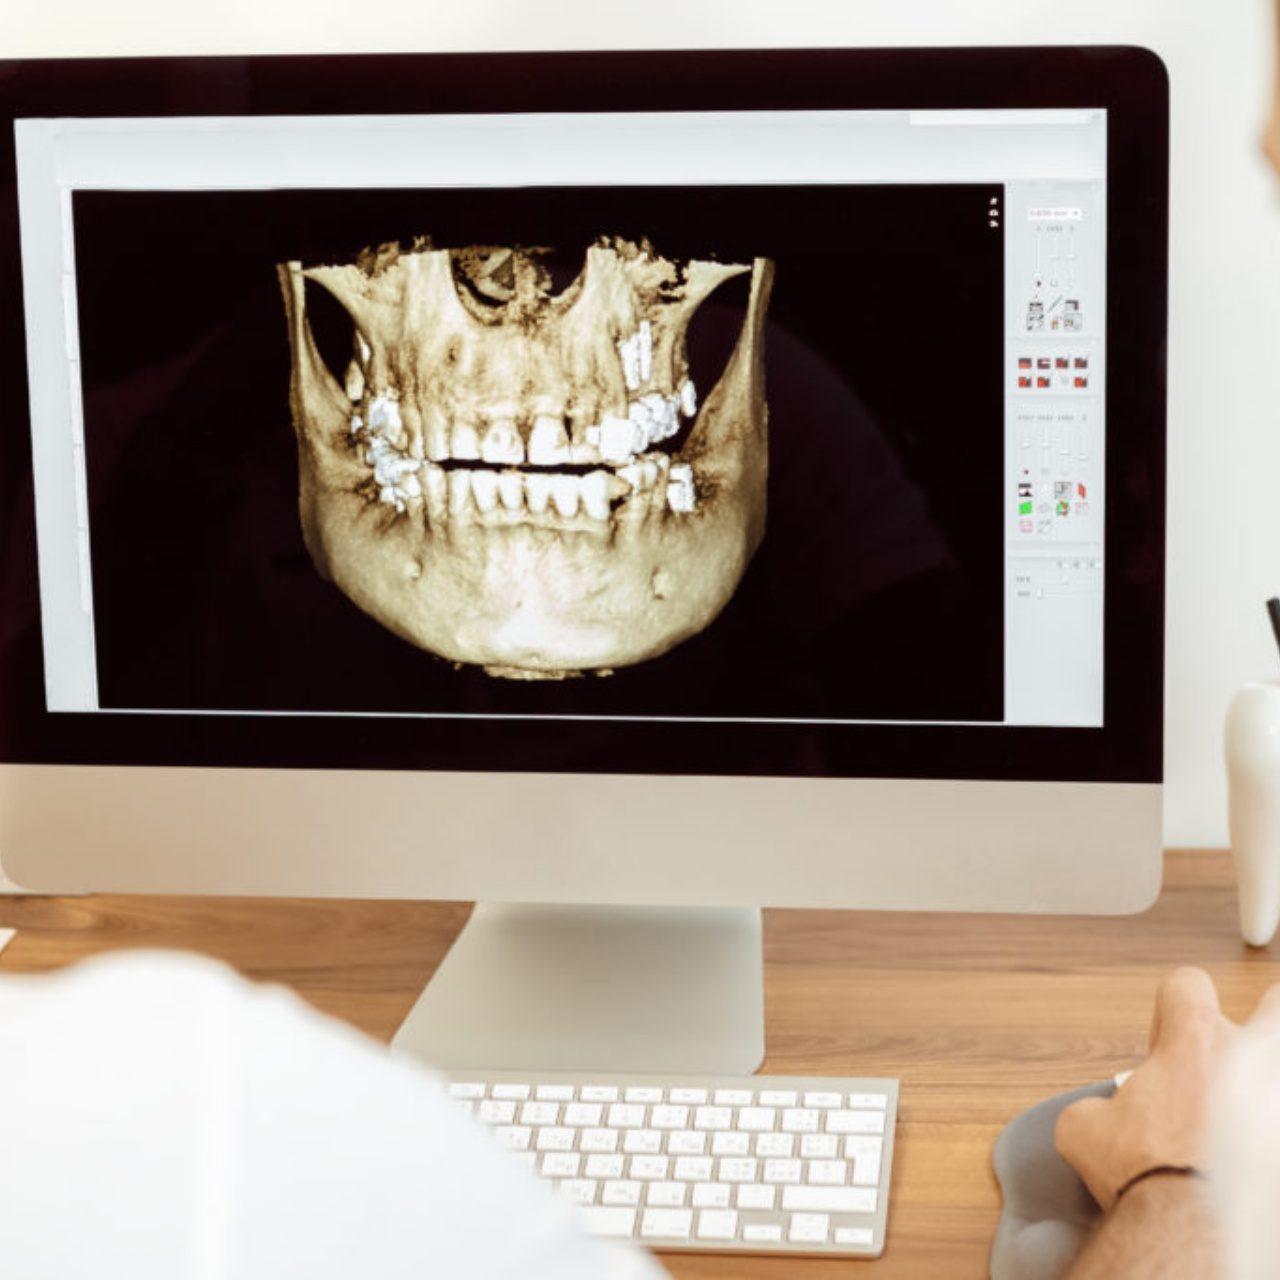 Computer with image of person's jaw